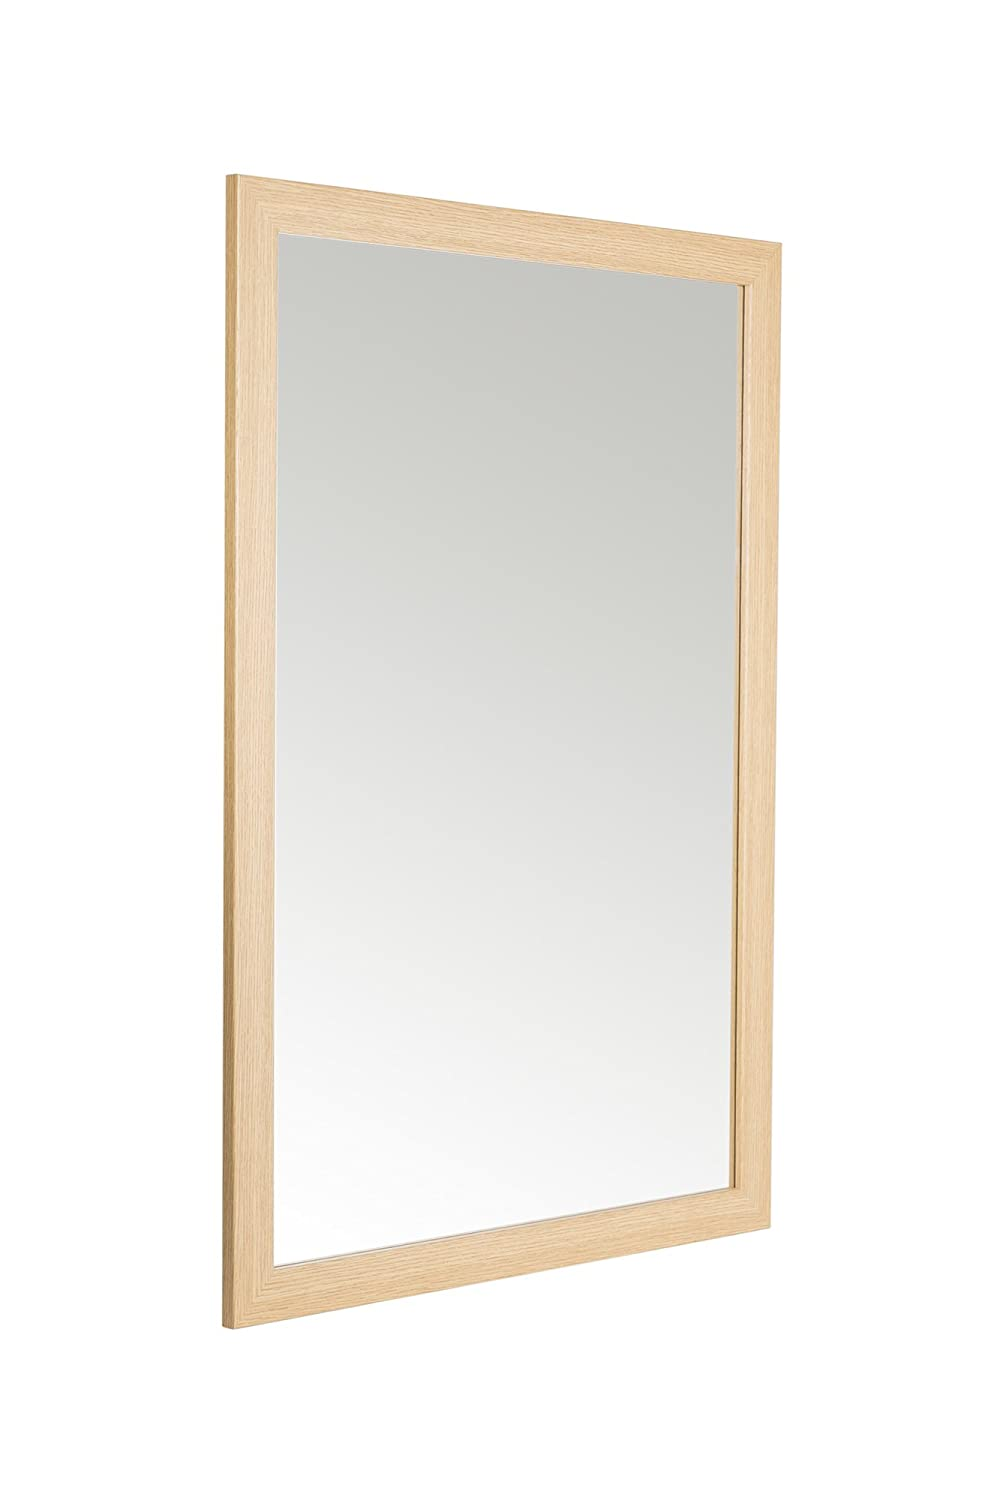 58 x 84cm Oak Effect Framed Mirror with Wall Hanging Fixings